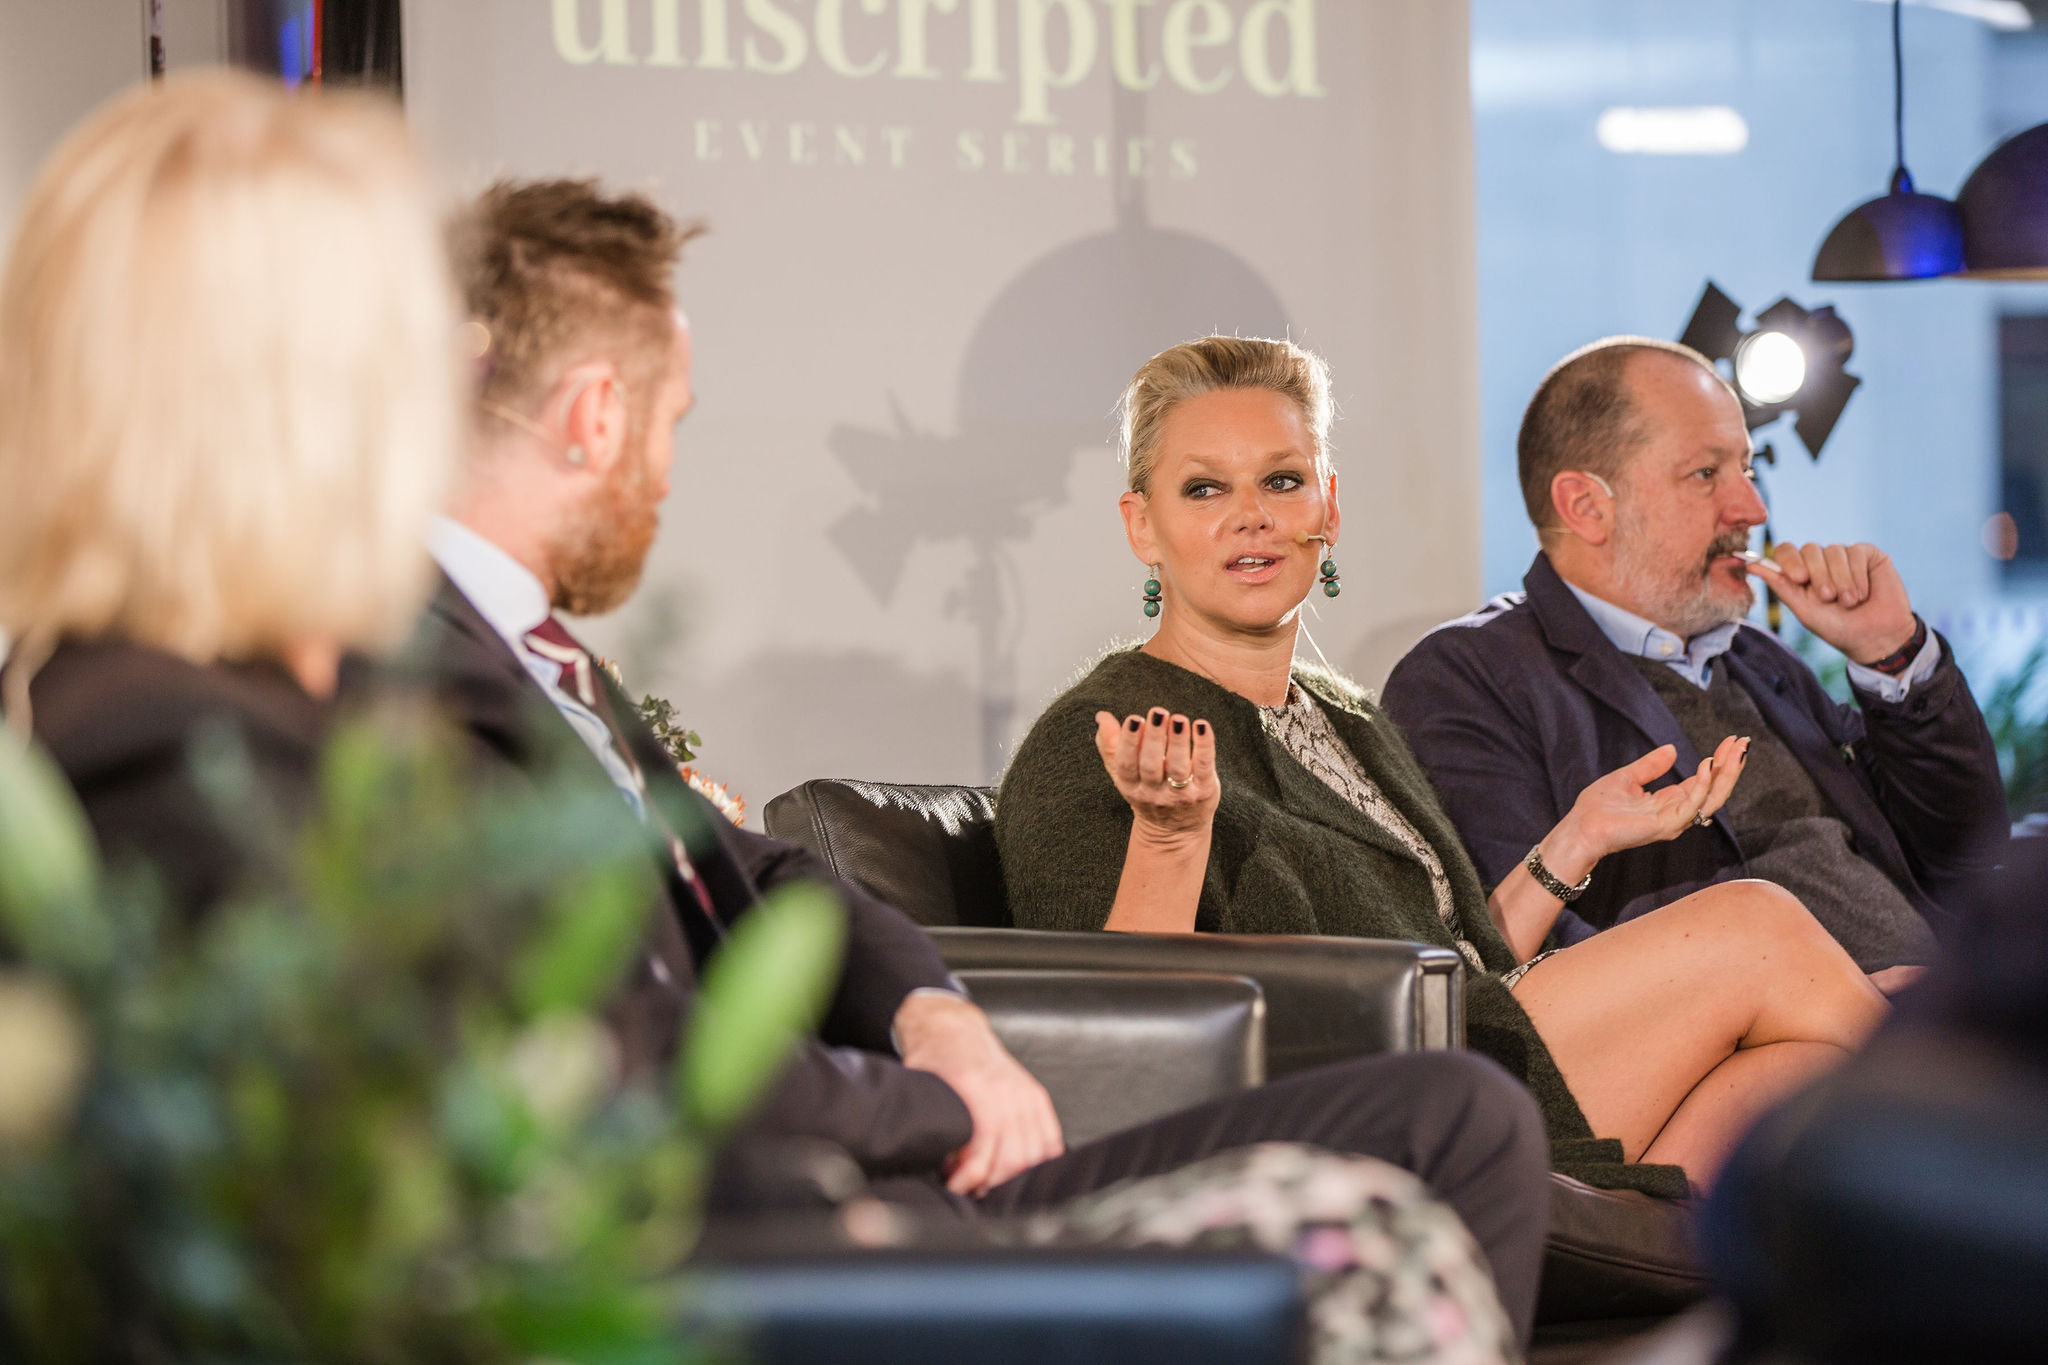 content-smith-unscripted-fireside-melbourne-capp-howcroft-read-donnelly49.jpg